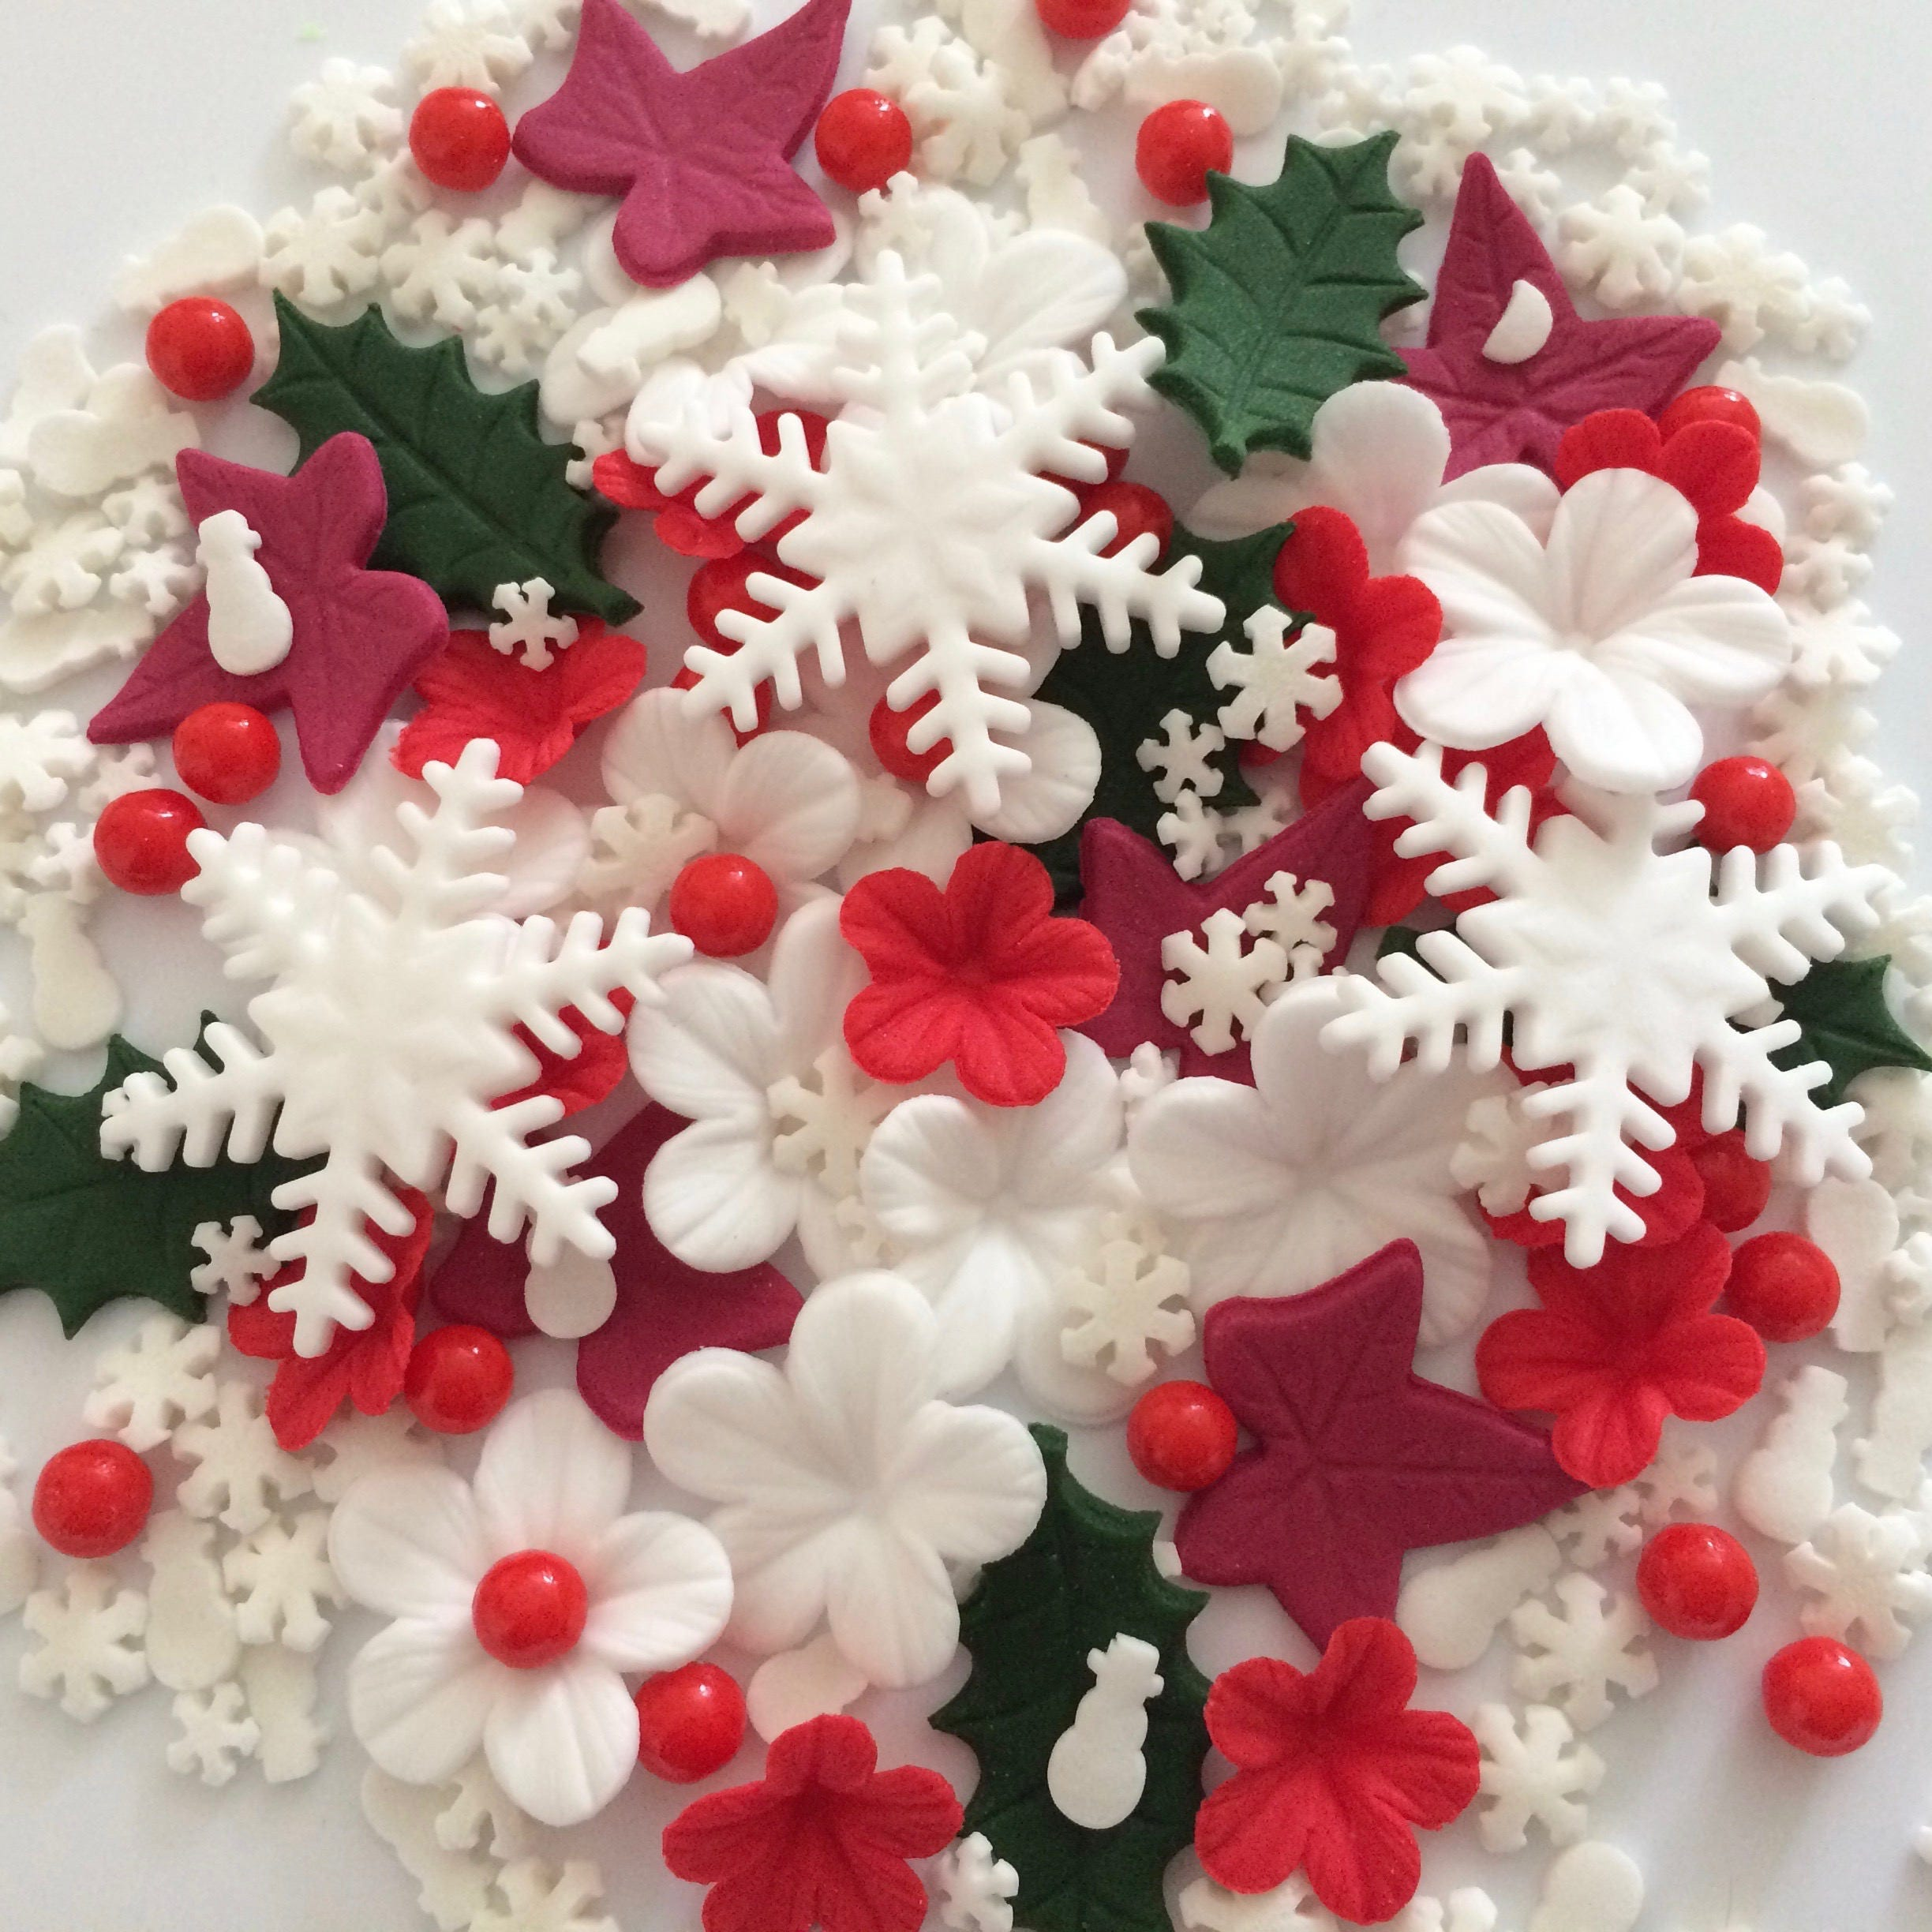 CHRISTMAS CAKE DECORATIONS edible sugar paste flowers cake